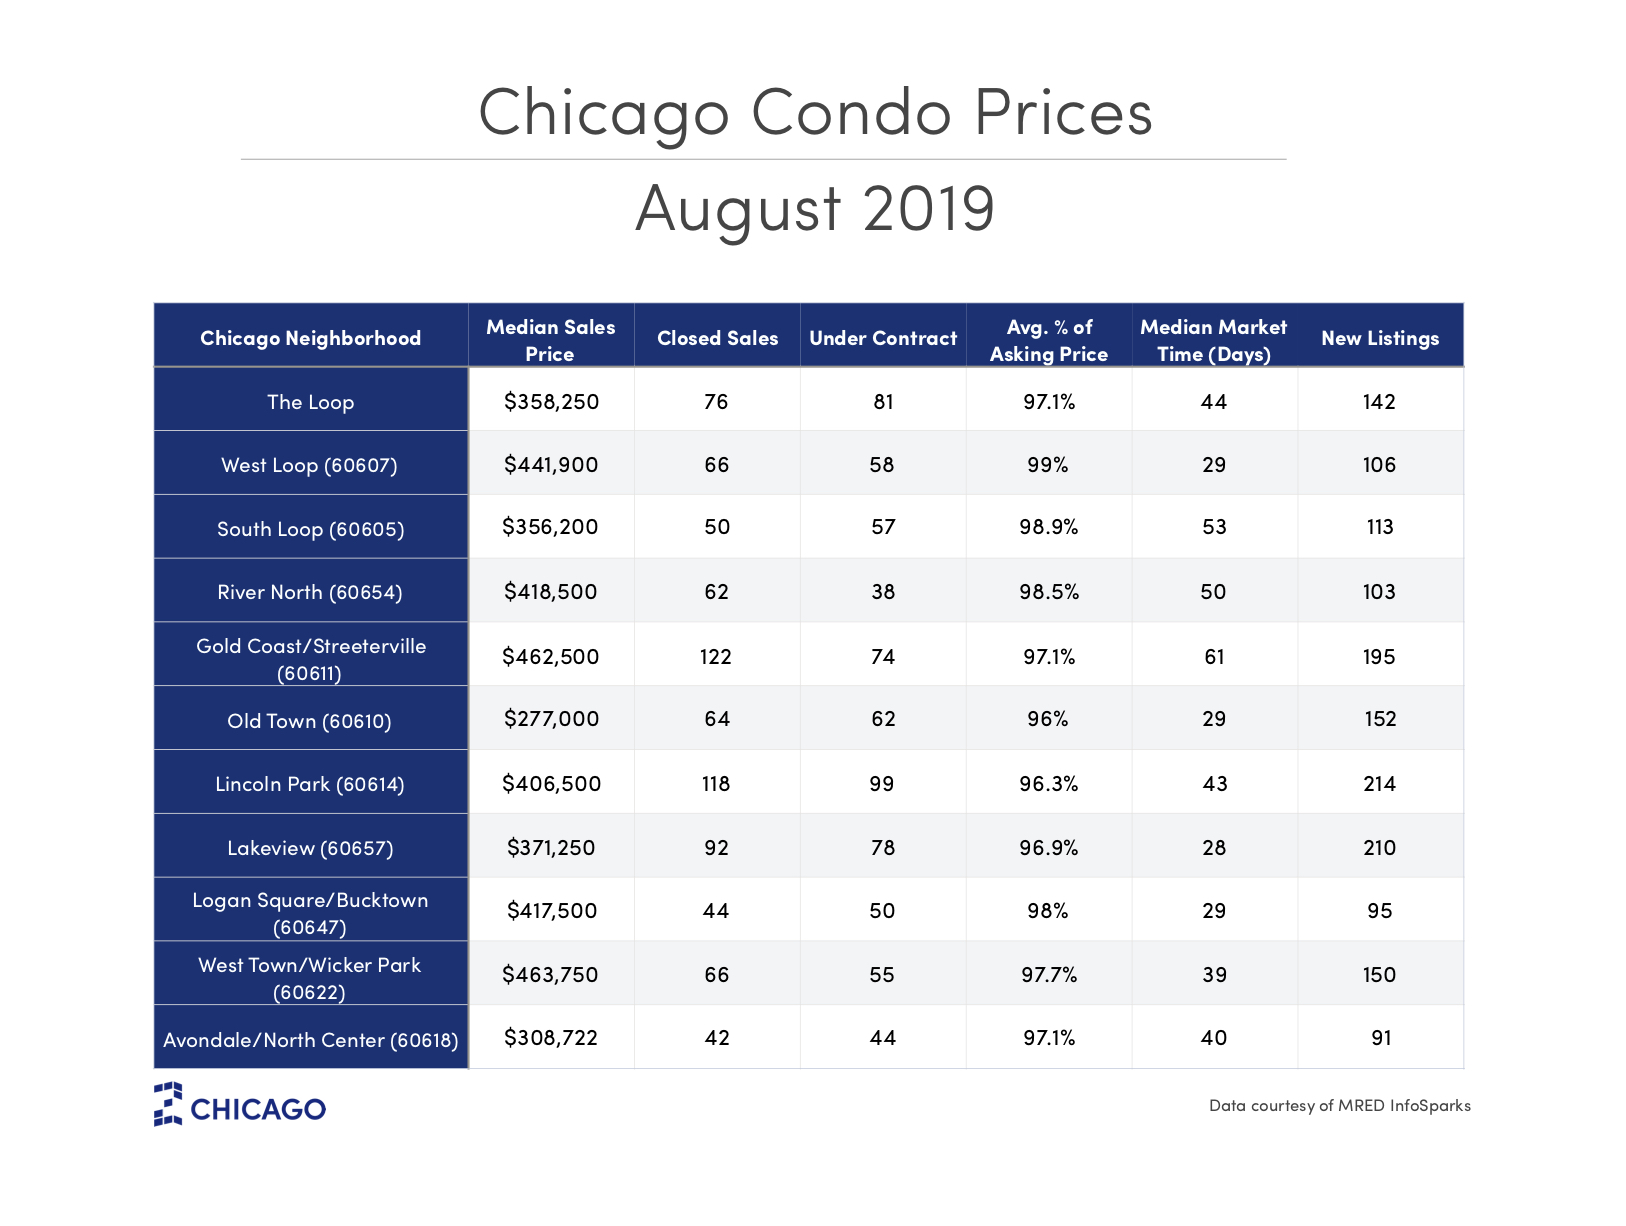 Chicago Condo Prices - September 2019